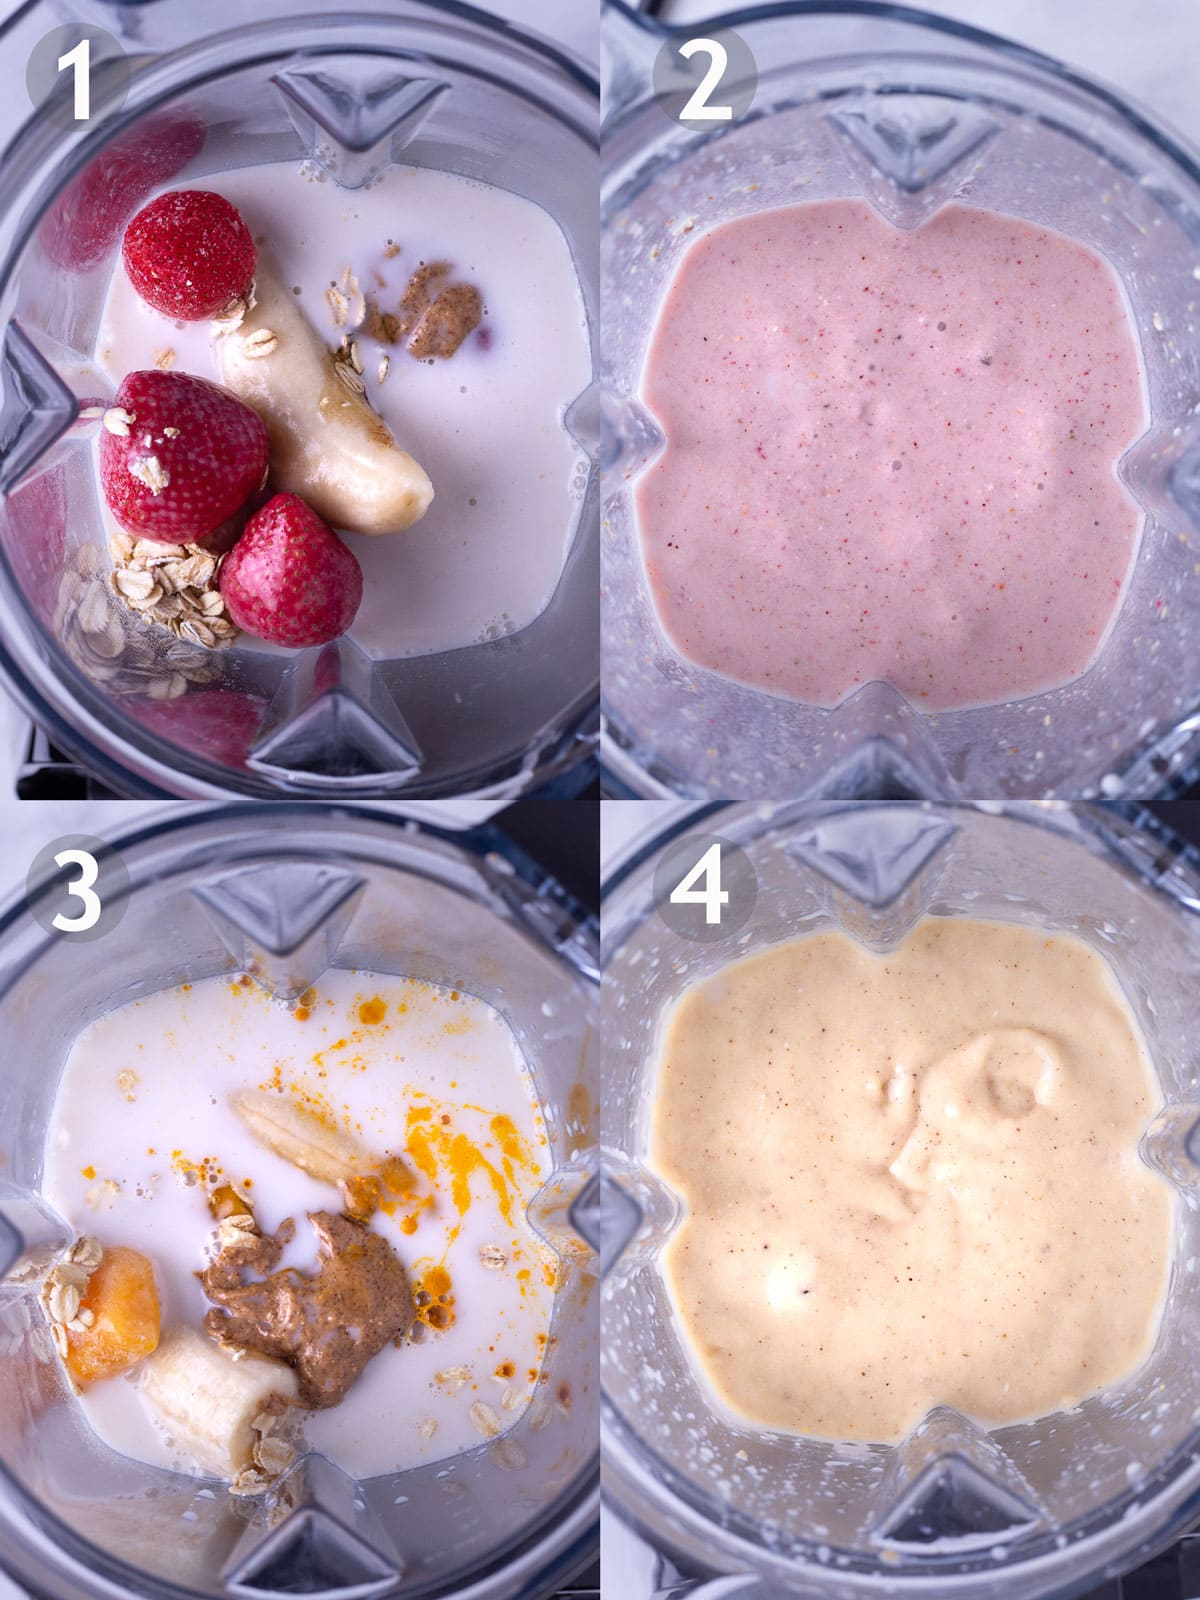 Before and after photos of blending ingredients for strawberry banana oat smoothie and mango turmeric oat smoothie.